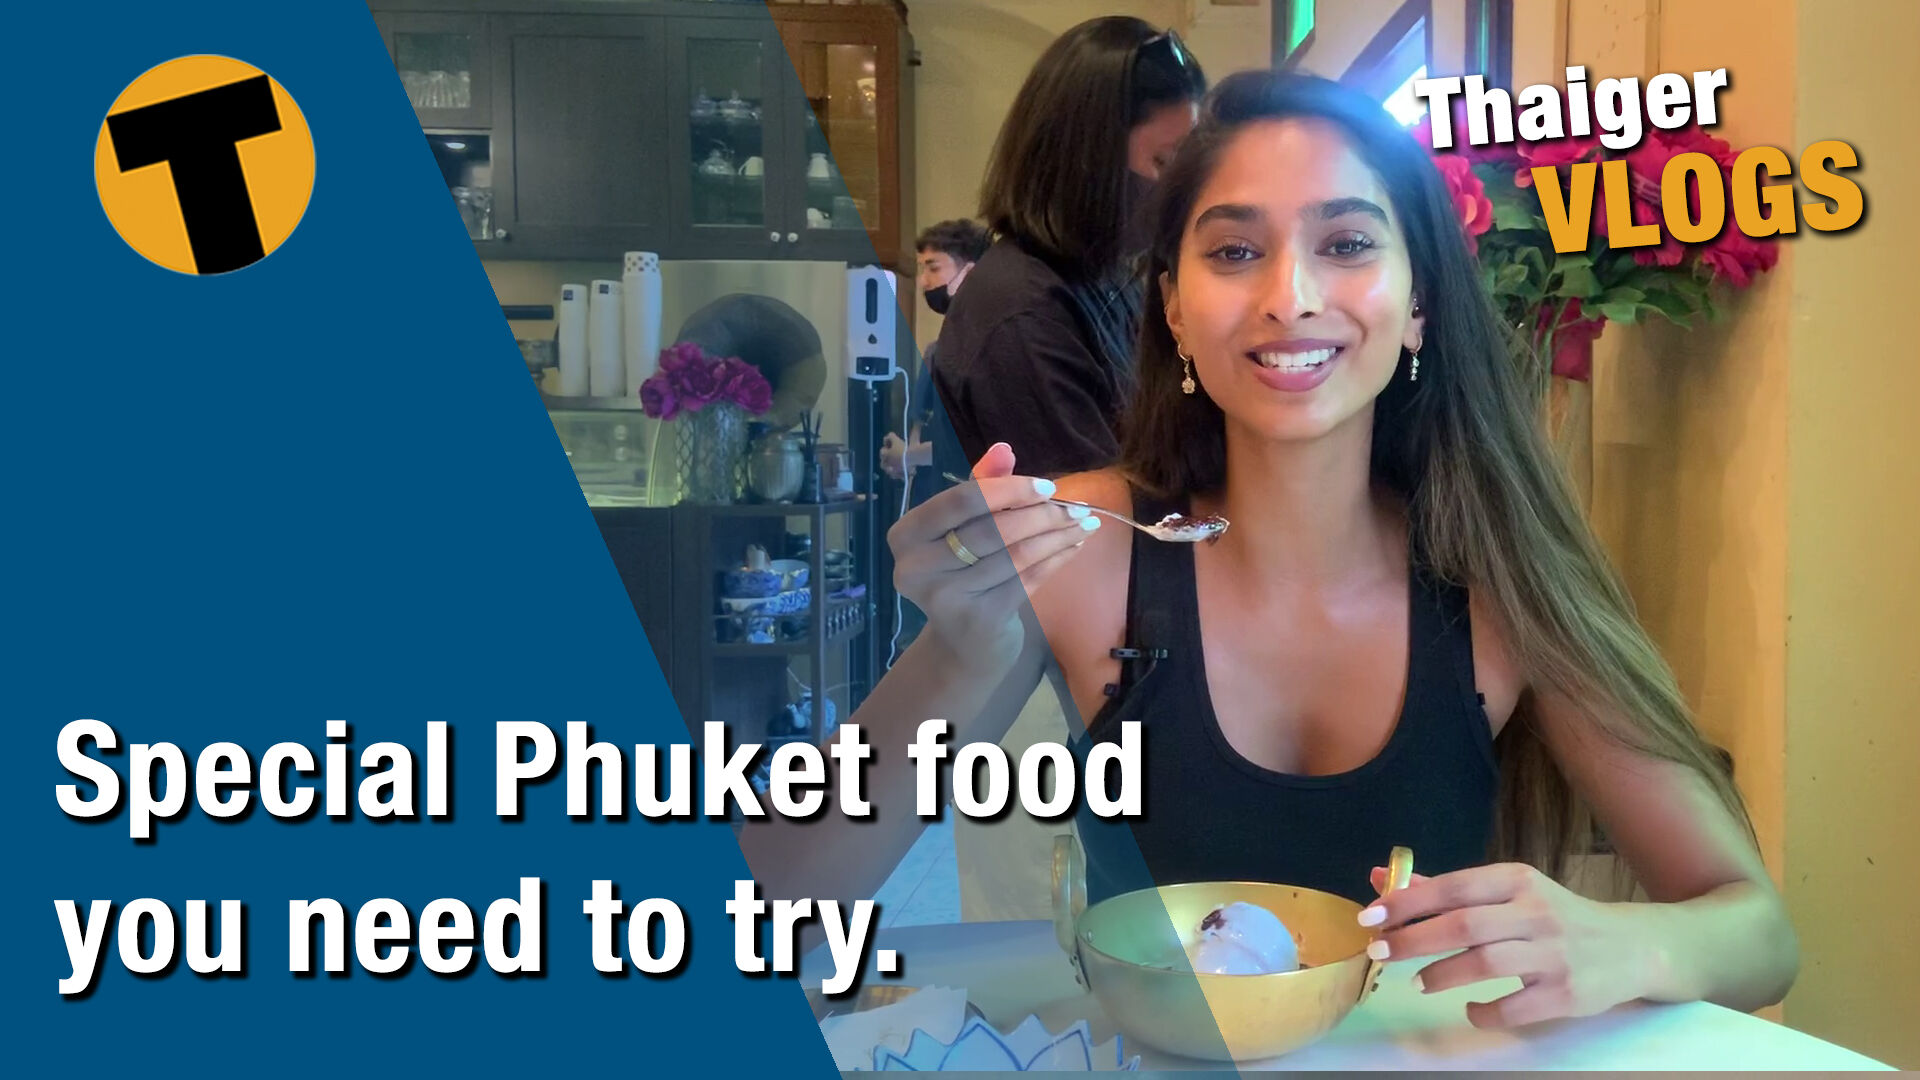 Phuket Thai food treats you need to try | VIDEO | The Thaiger